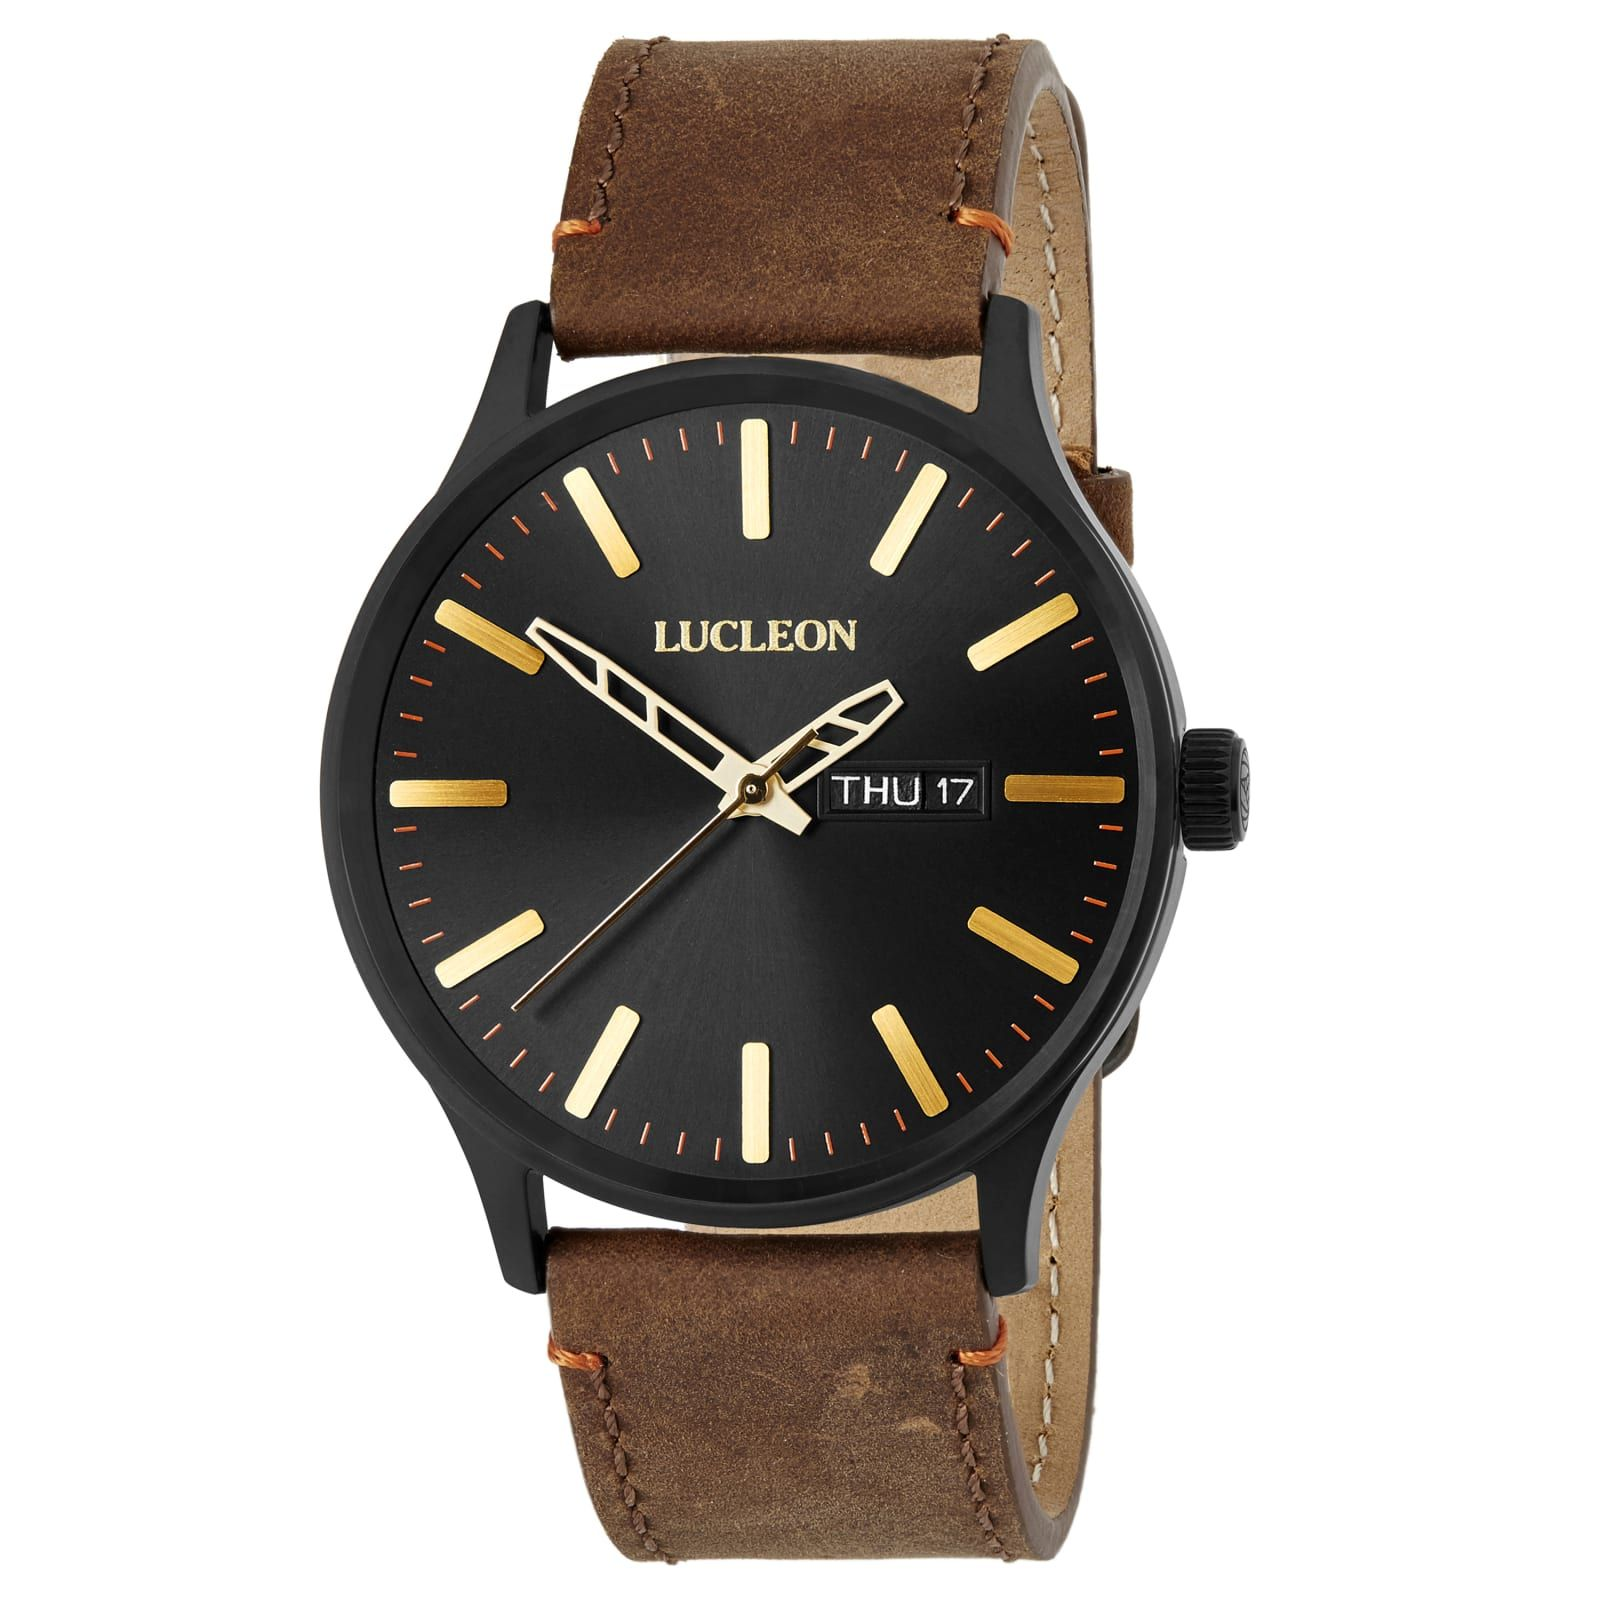 Photo of Telluric Grover Watch | Lucleon | Free shipping over $75